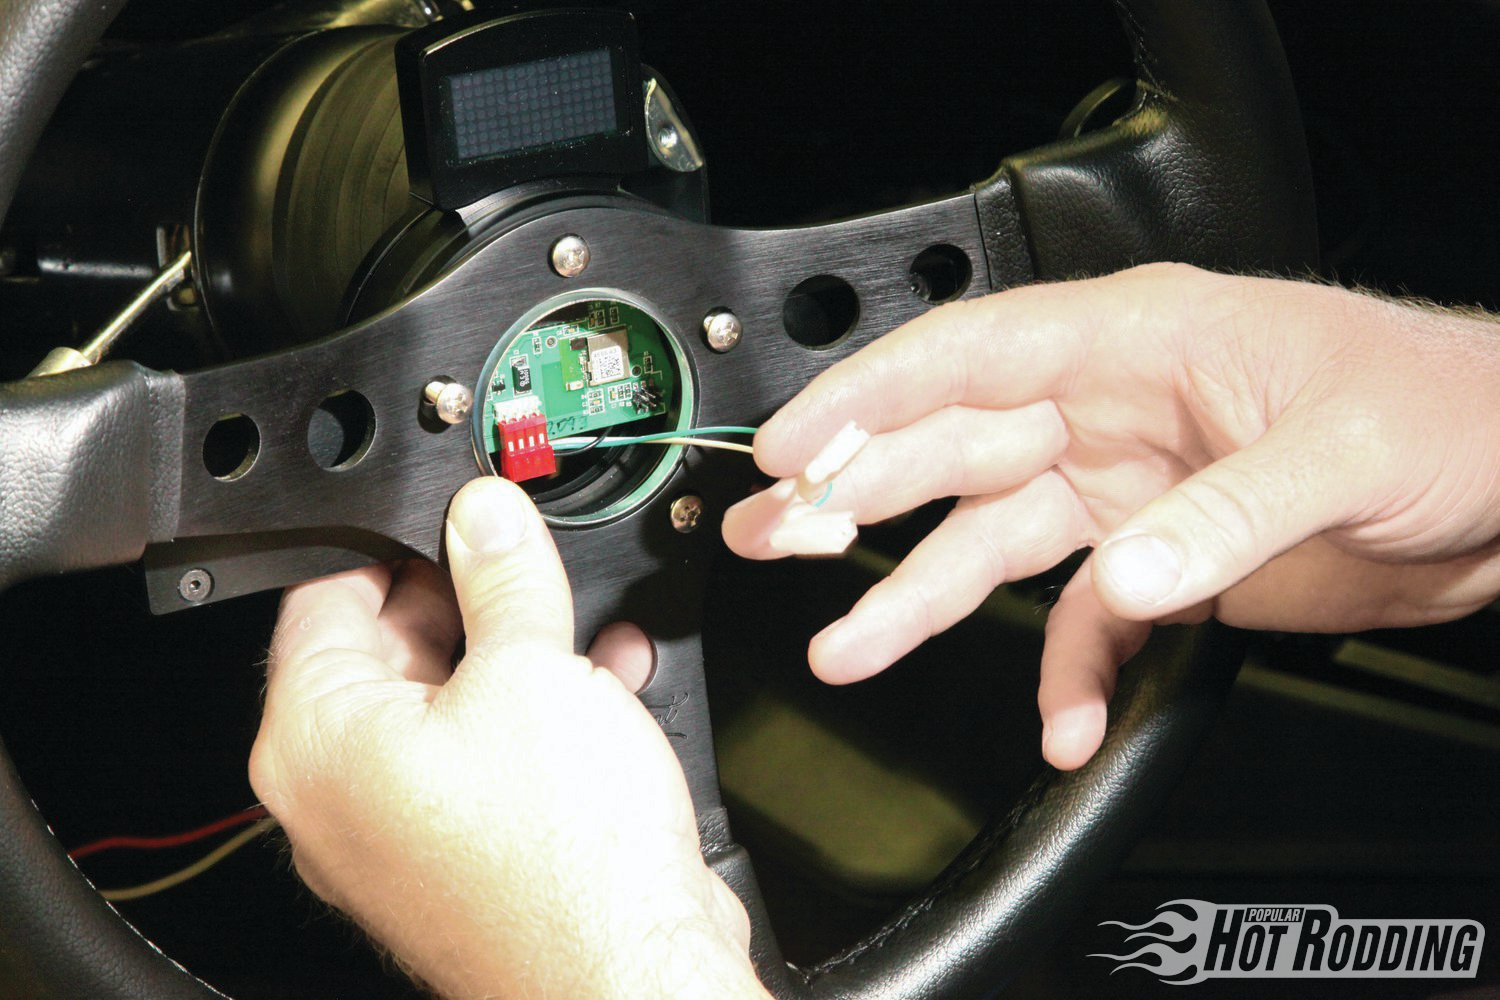 13. This small harness attaches to the old horn power wire and plugs into the paddle shifter circuit board via a small four-pin connector. Make sure not to bend the pins, a gentle touch works best. The last two spade connectors connect to the horn button and ground.